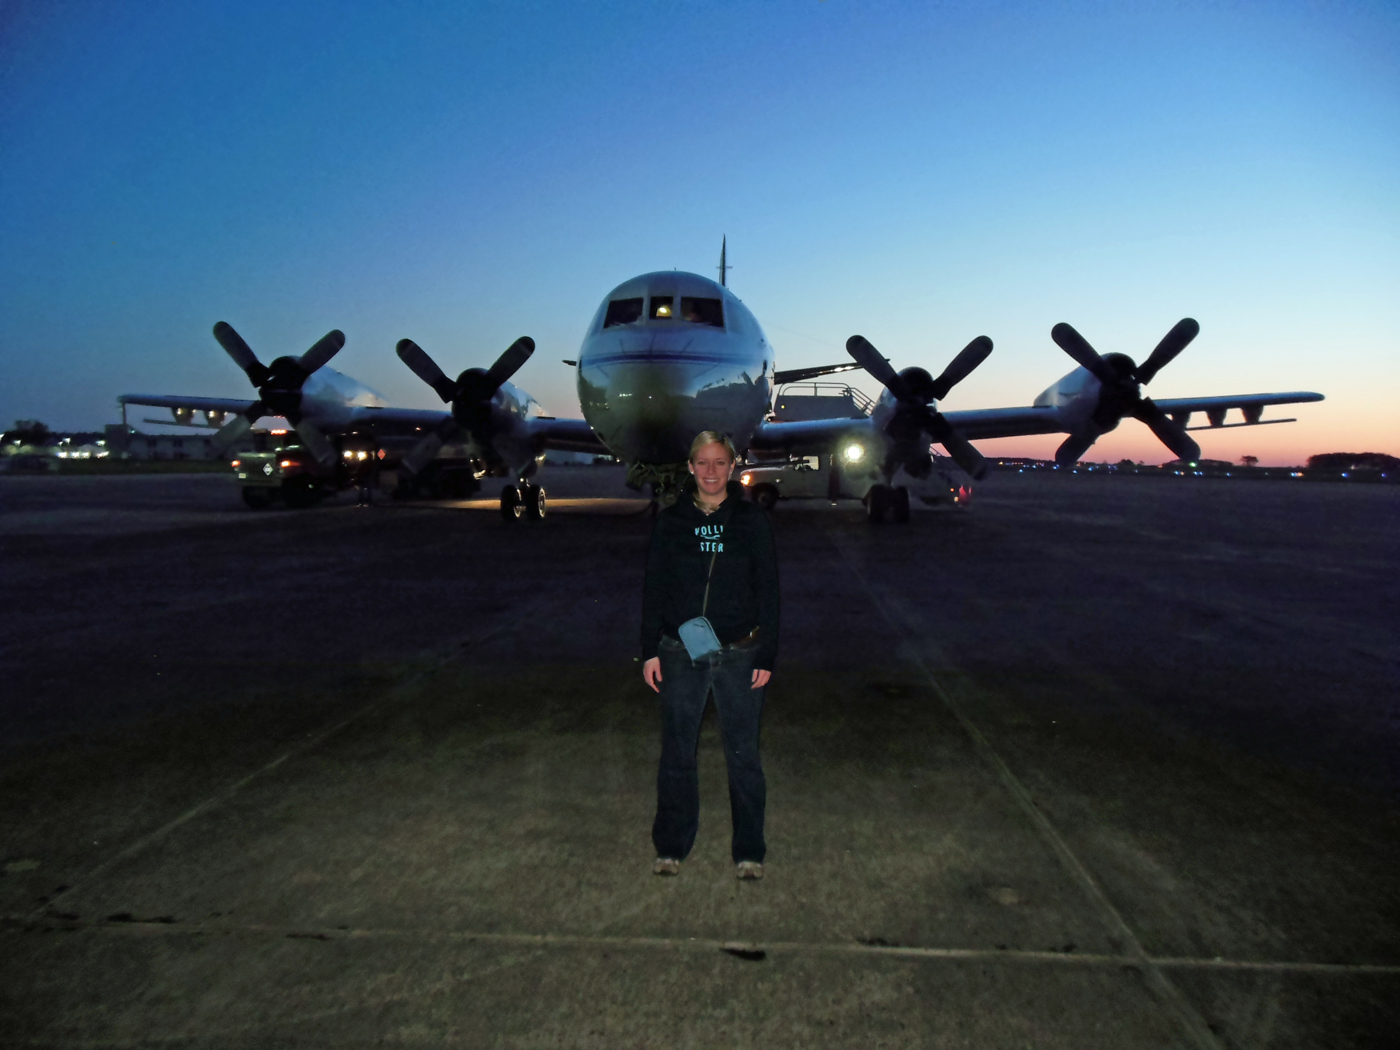 Christy Hansen stands in front of an airplane at Wallops Flight Facility in Virginia. This plane took her to Greenland this past April.